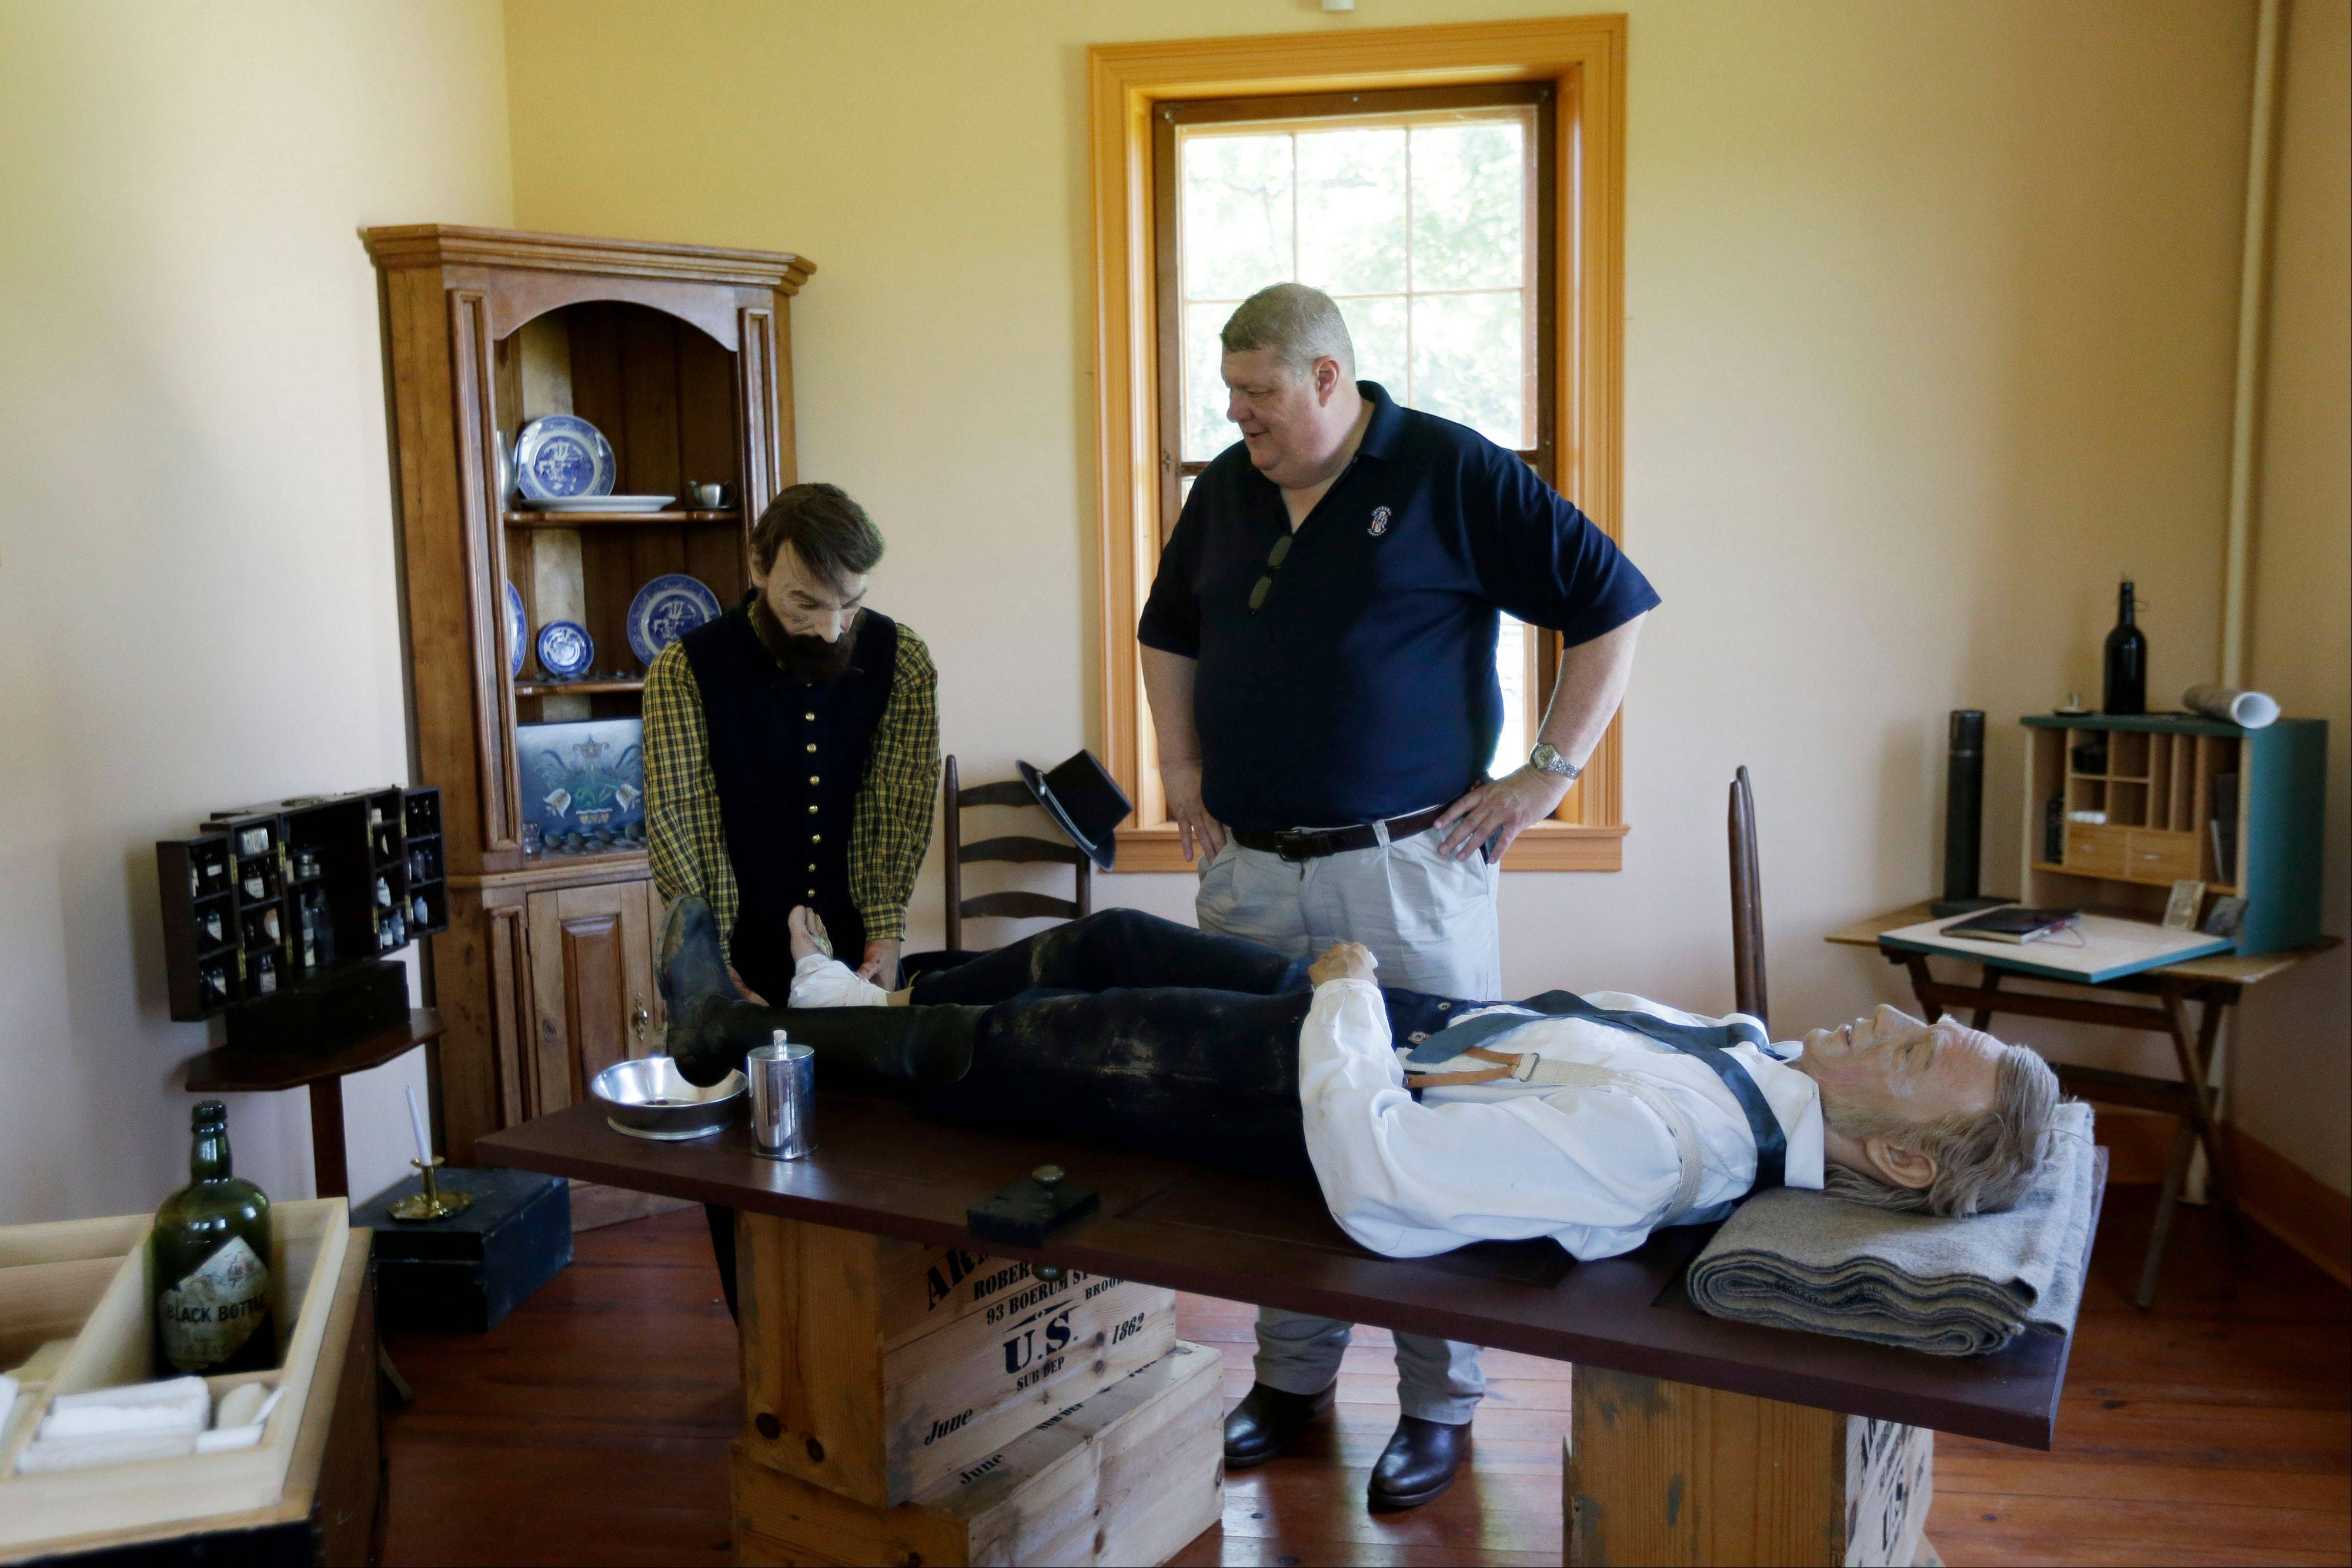 George Wunderlich, director of the National Museum of Civil War Medicine, poses for a portrait Friday with a depiction of an operating theater in the Pry House Field Hospital Museum in Keedysville, MD. The house is located on the Antietam Battlefield, which served both as Union General George McClellan's and Union Army Maj. Dr. Jonathan Letterman's headquarters during the battle.